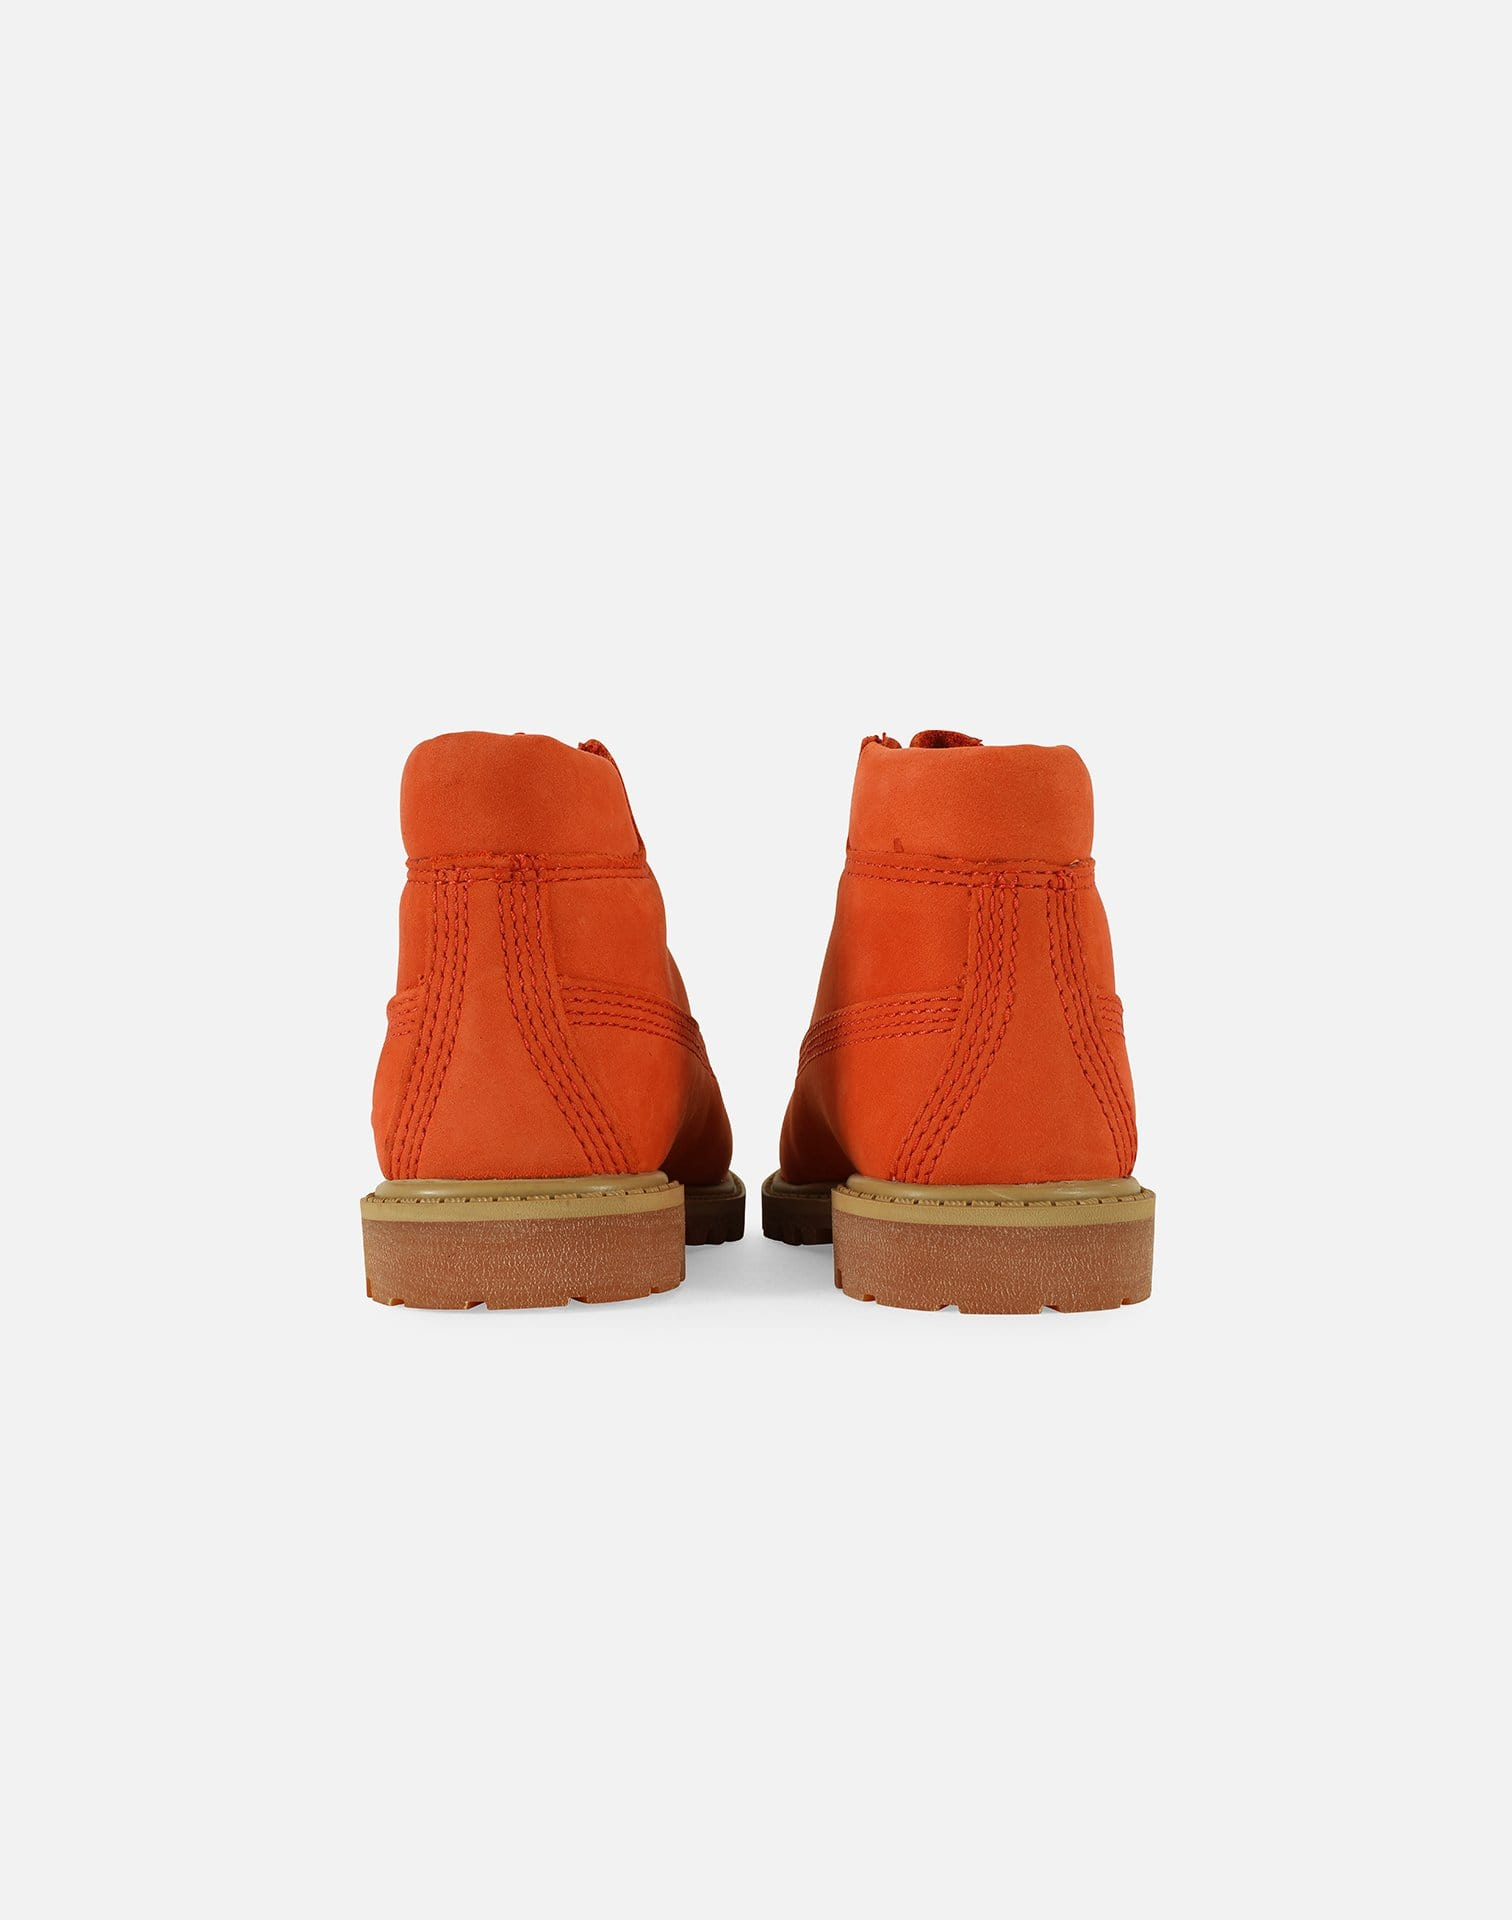 Timberland x DTLR Exclusive 6-Inch Premium Waterproof 'Orange Blaze' Boots Infant